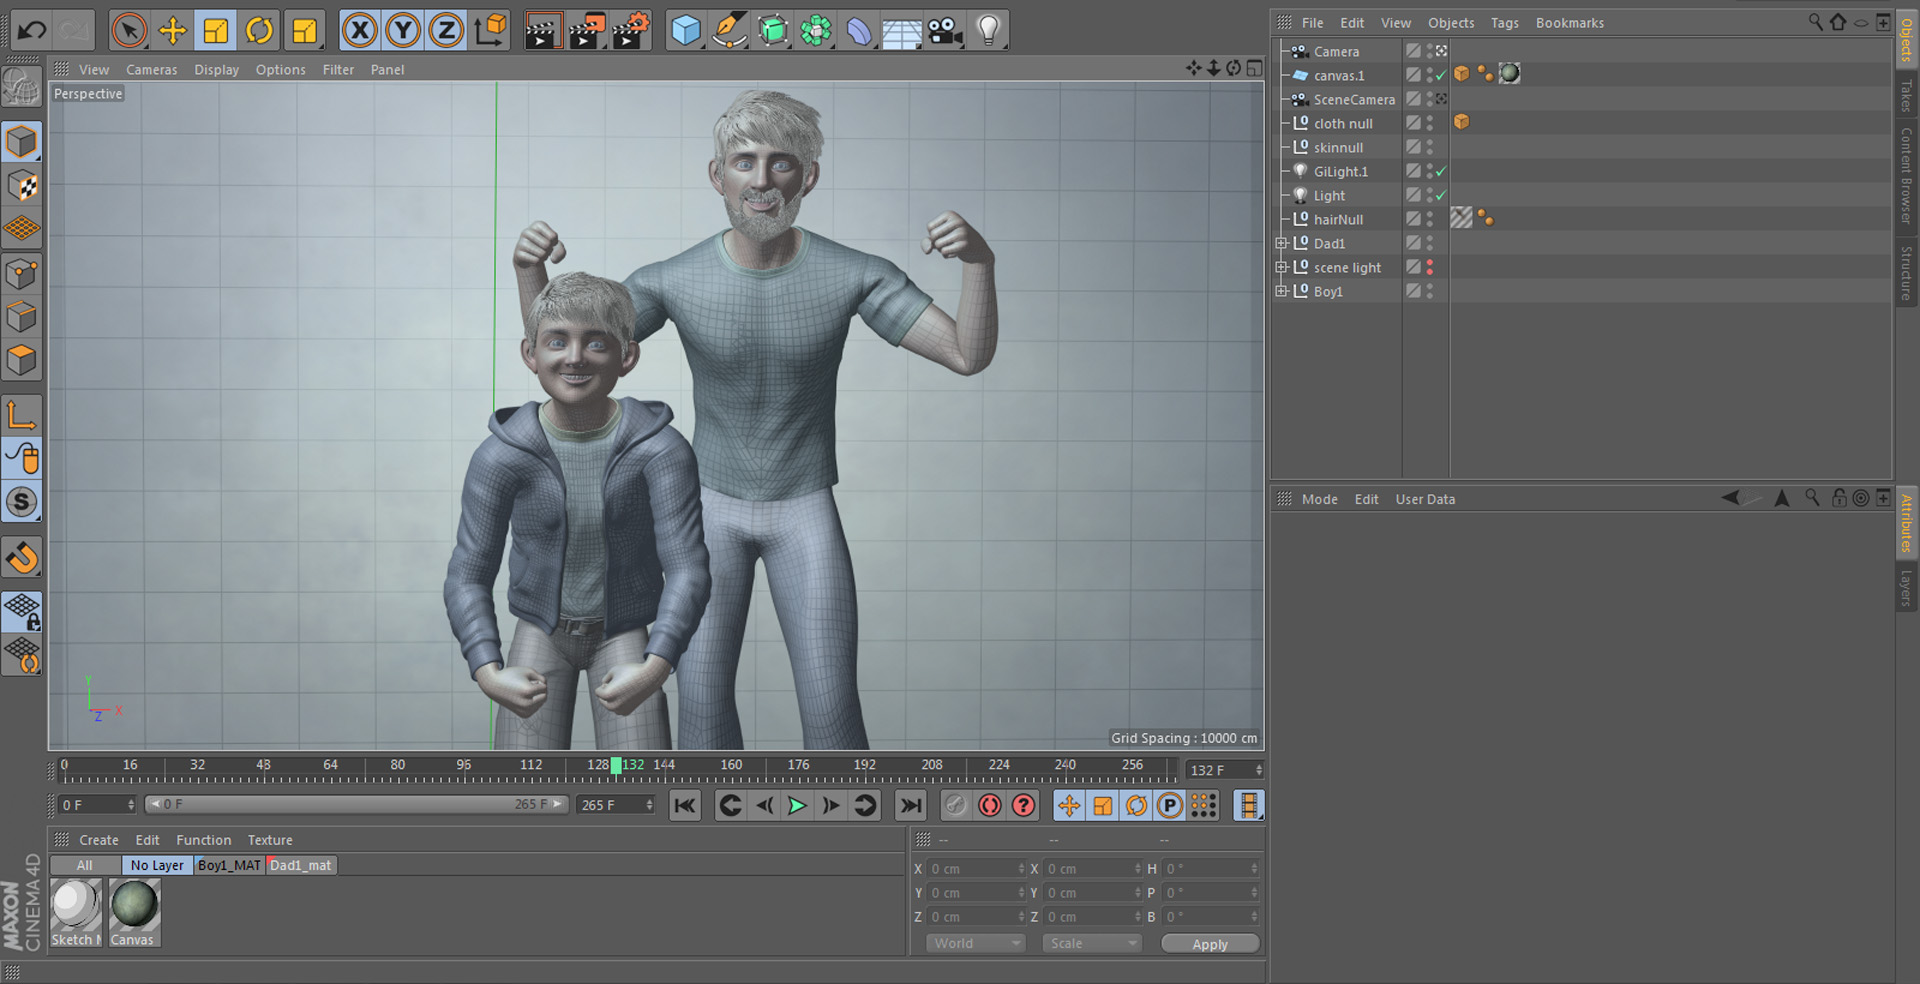 Hair was generated as meshes in order to render C4D hair with a Sketch & Toon look properly.